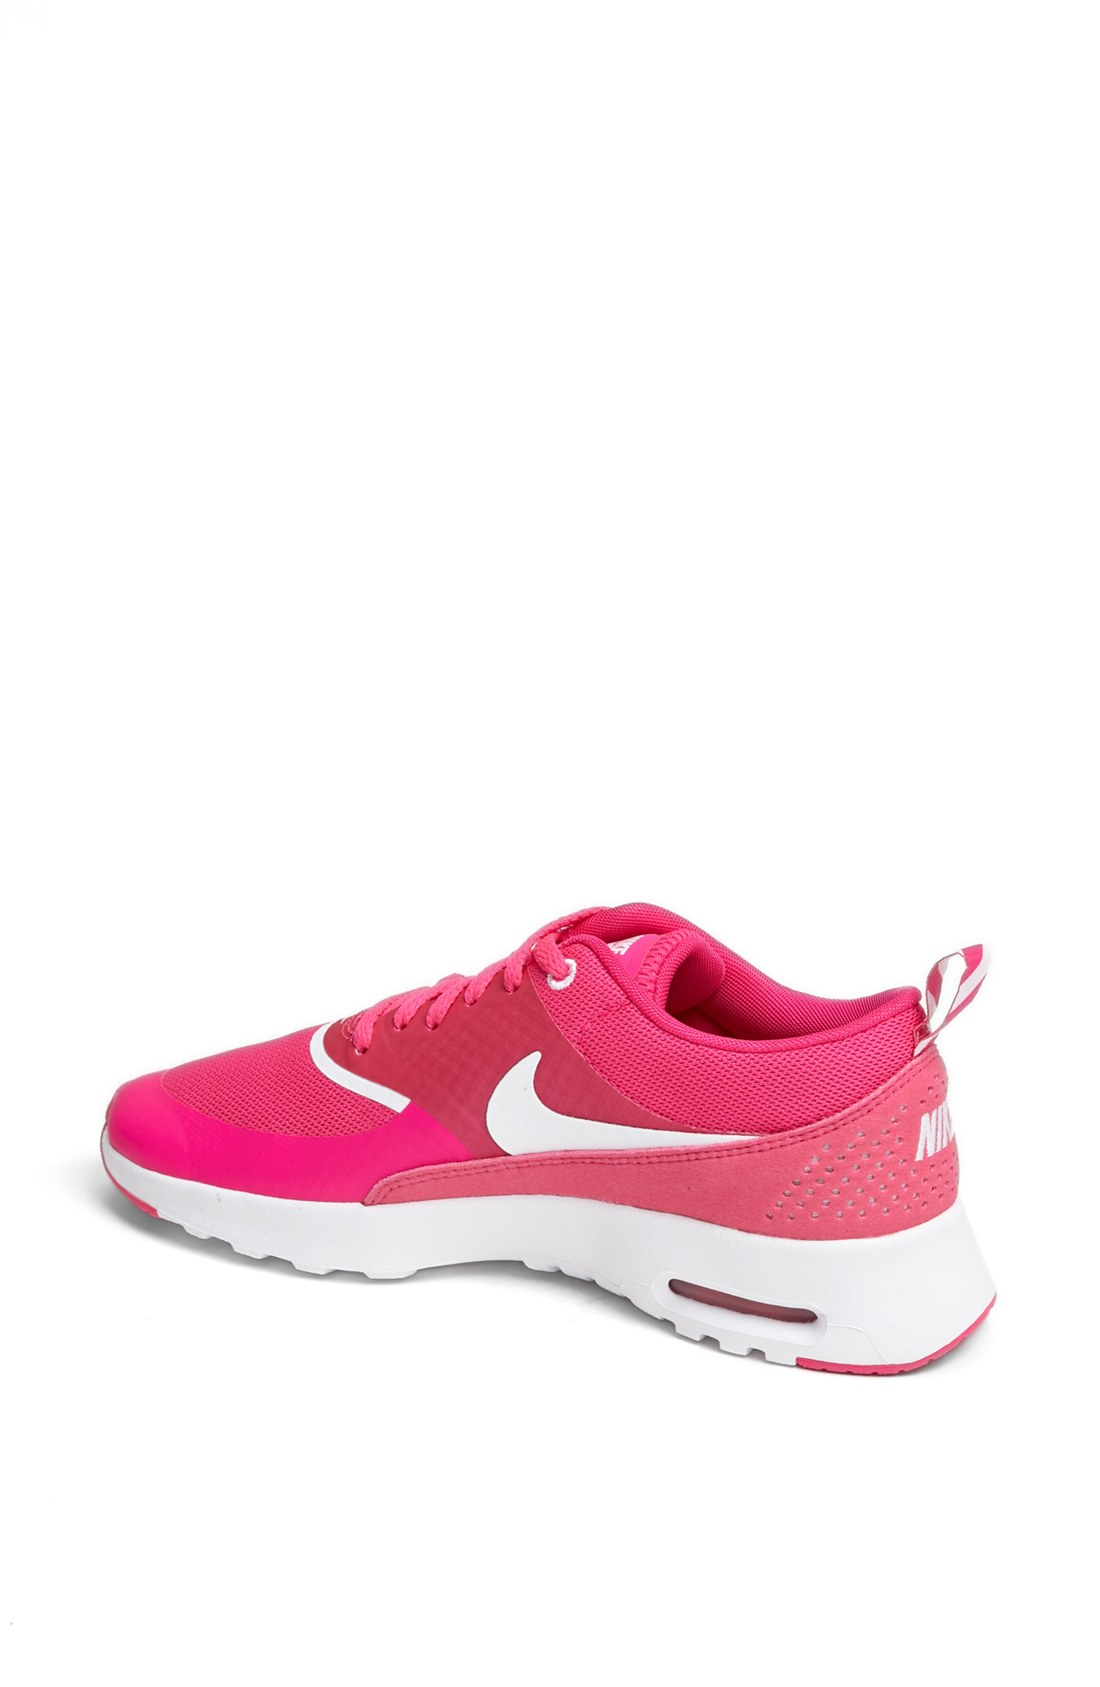 Air Max Thea Pink And White